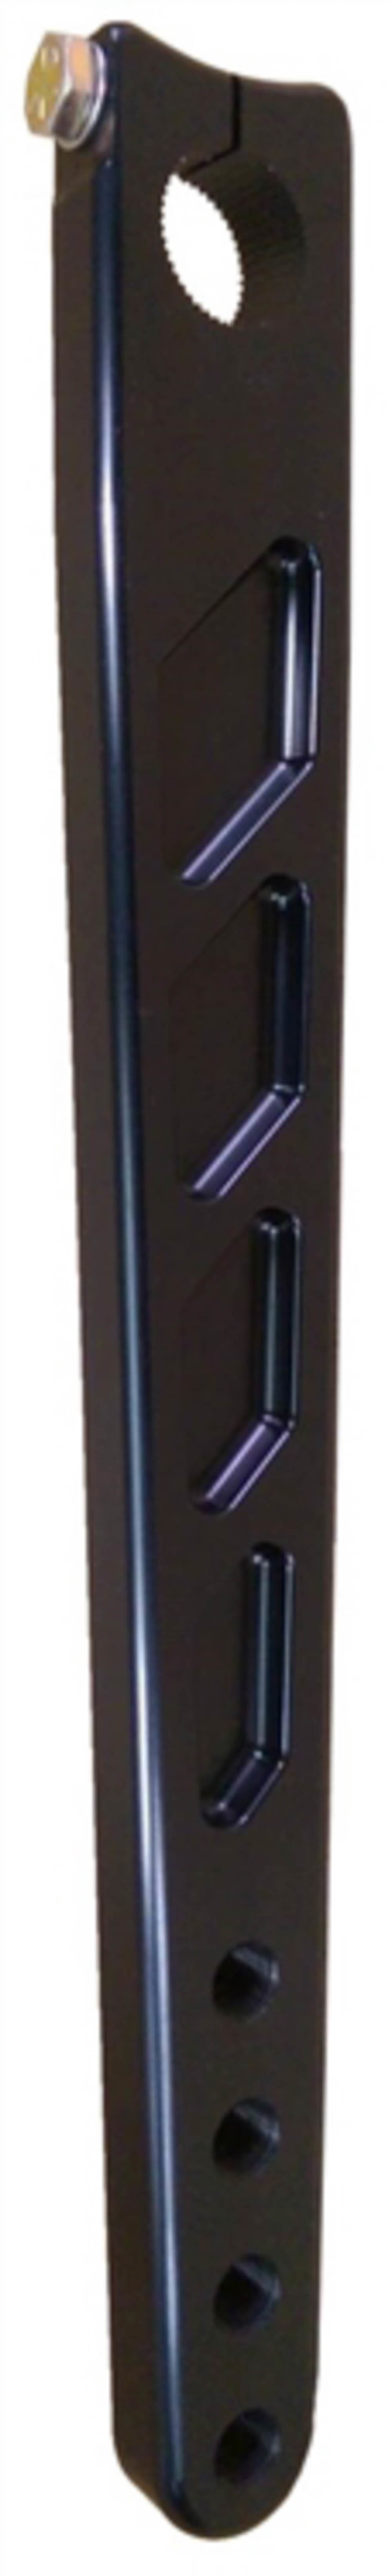 Tripple X Race Components MID-ST-0008BLK Pitman Arm, 11-1/4 to 14-1/4 in Long, 10 Degree Angle Broach, Aluminum -Black Anodize, Triple X Sprint Car, Each